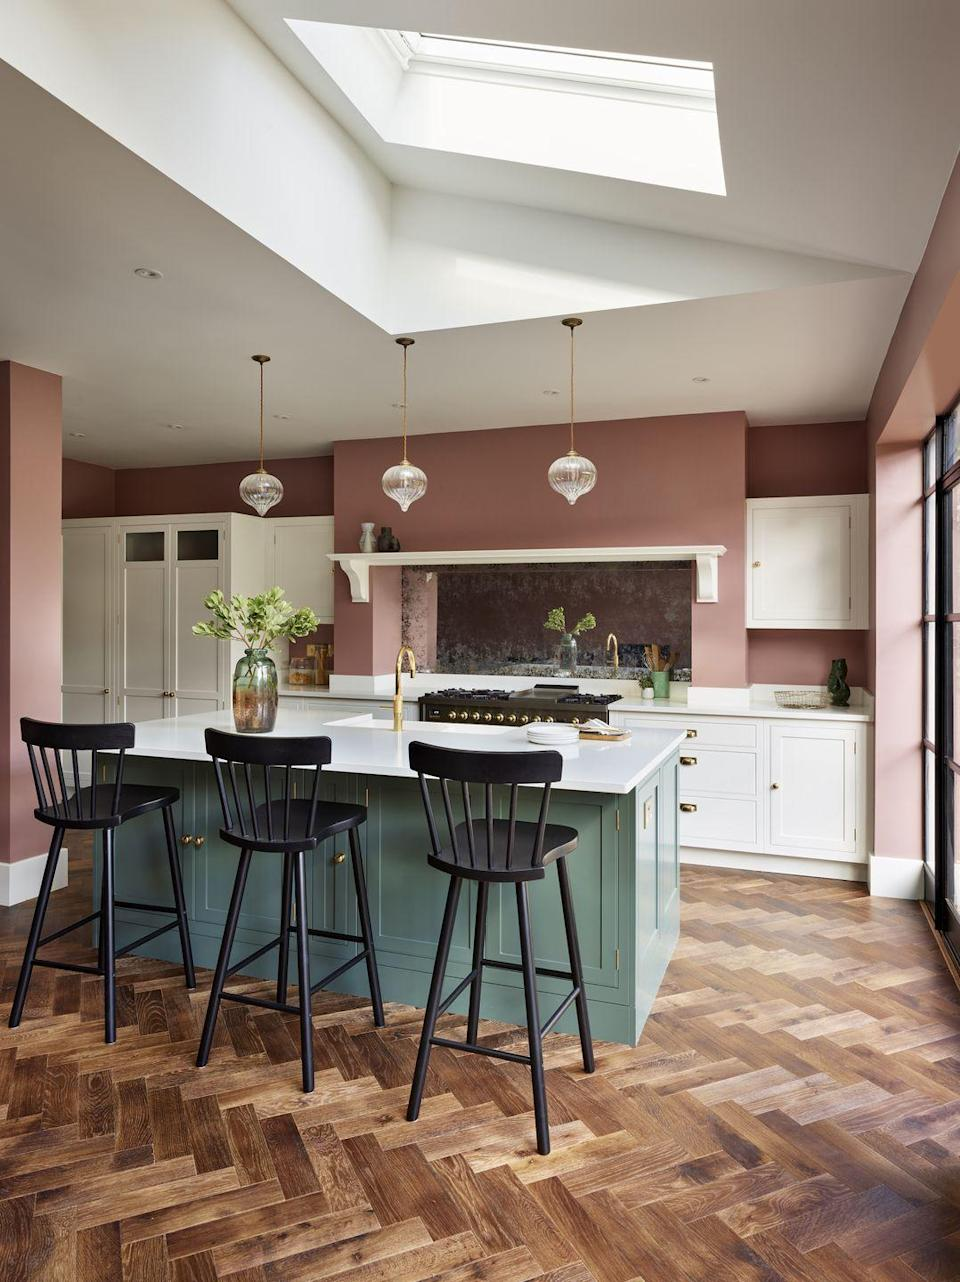 "<p>Two tone, contrasting finishes are becoming a desirable aesthetic in the kitchen. You could opt for contrasting wall and floor mounted cabinetry; deep, dark units contrasted with brighter shades elsewhere; an island in an eye-catching hue, or it could be as simple as teaming a darker shade of grey with a softer dove grey hue.</p><p>This design feature is also being utilised in parts of the kitchen that aren't as visible, such as drawer and cupboard interiors which now demand the same consideration as the exterior finishes.</p><p>'If done correctly, working with a contrasting scheme can allow you to break up colour and add a real touch of uniqueness to your kitchen design,' say the team at <a href=""https://www.benchmarxkitchens.co.uk/"" rel=""nofollow noopener"" target=""_blank"" data-ylk=""slk:Benchmarx Kitchens"" class=""link rapid-noclick-resp"">Benchmarx Kitchens</a>.</p><p>Pictured: Arbor kitchen design, <a href=""https://www.harveyjones.com/our-kitchens/arbor-kitchens"" rel=""nofollow noopener"" target=""_blank"" data-ylk=""slk:Harvey Jones"" class=""link rapid-noclick-resp"">Harvey Jones</a></p>"